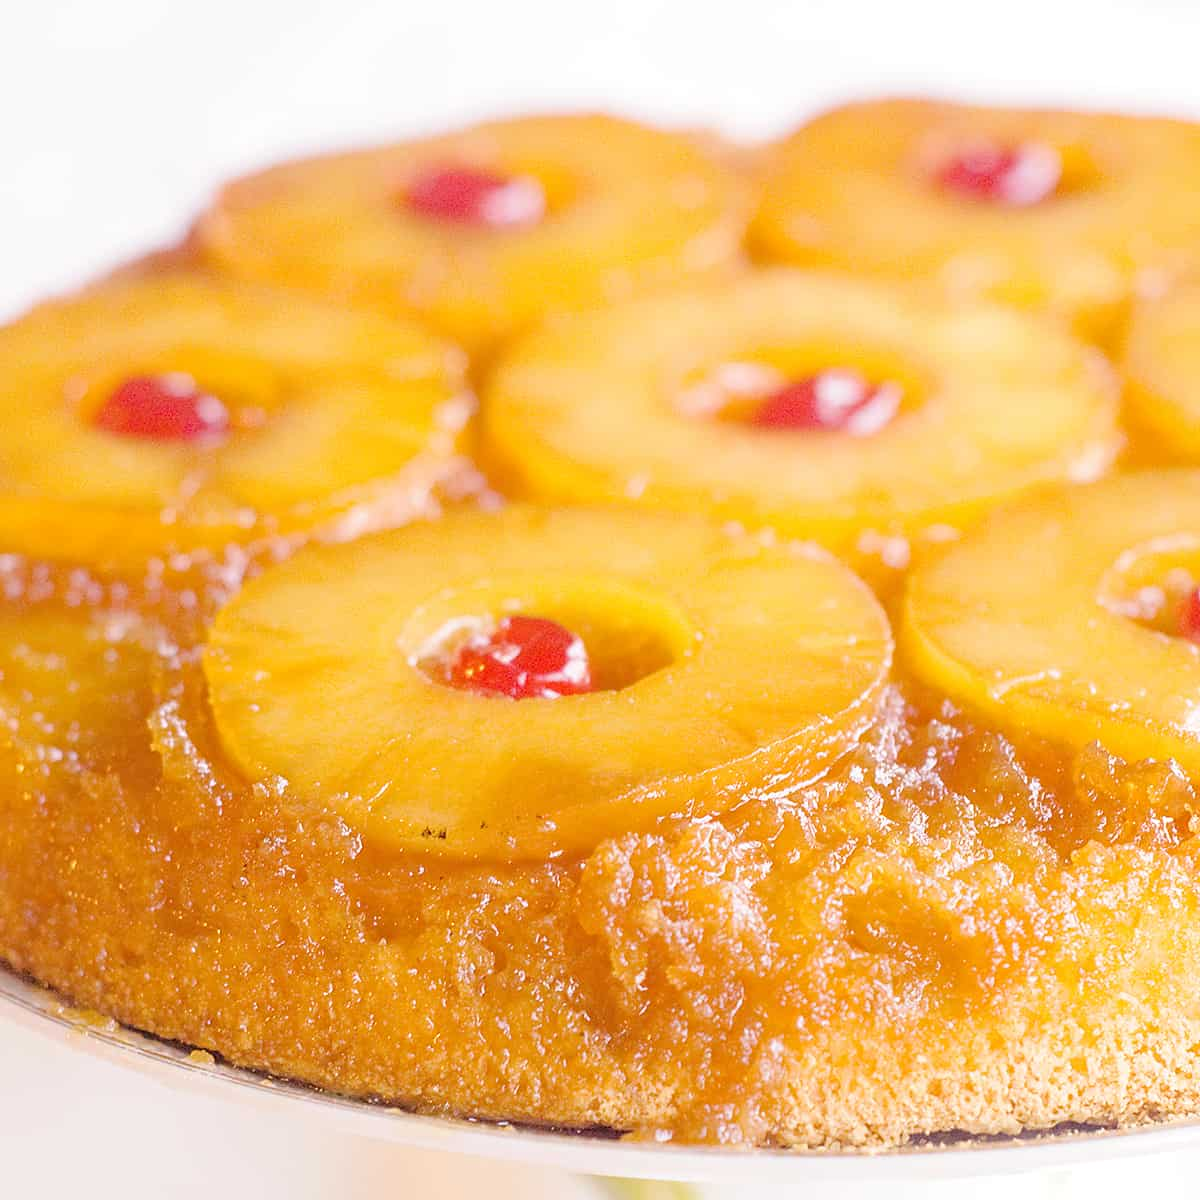 Skillet Pineapple Upside Down Cake on a serving plate.